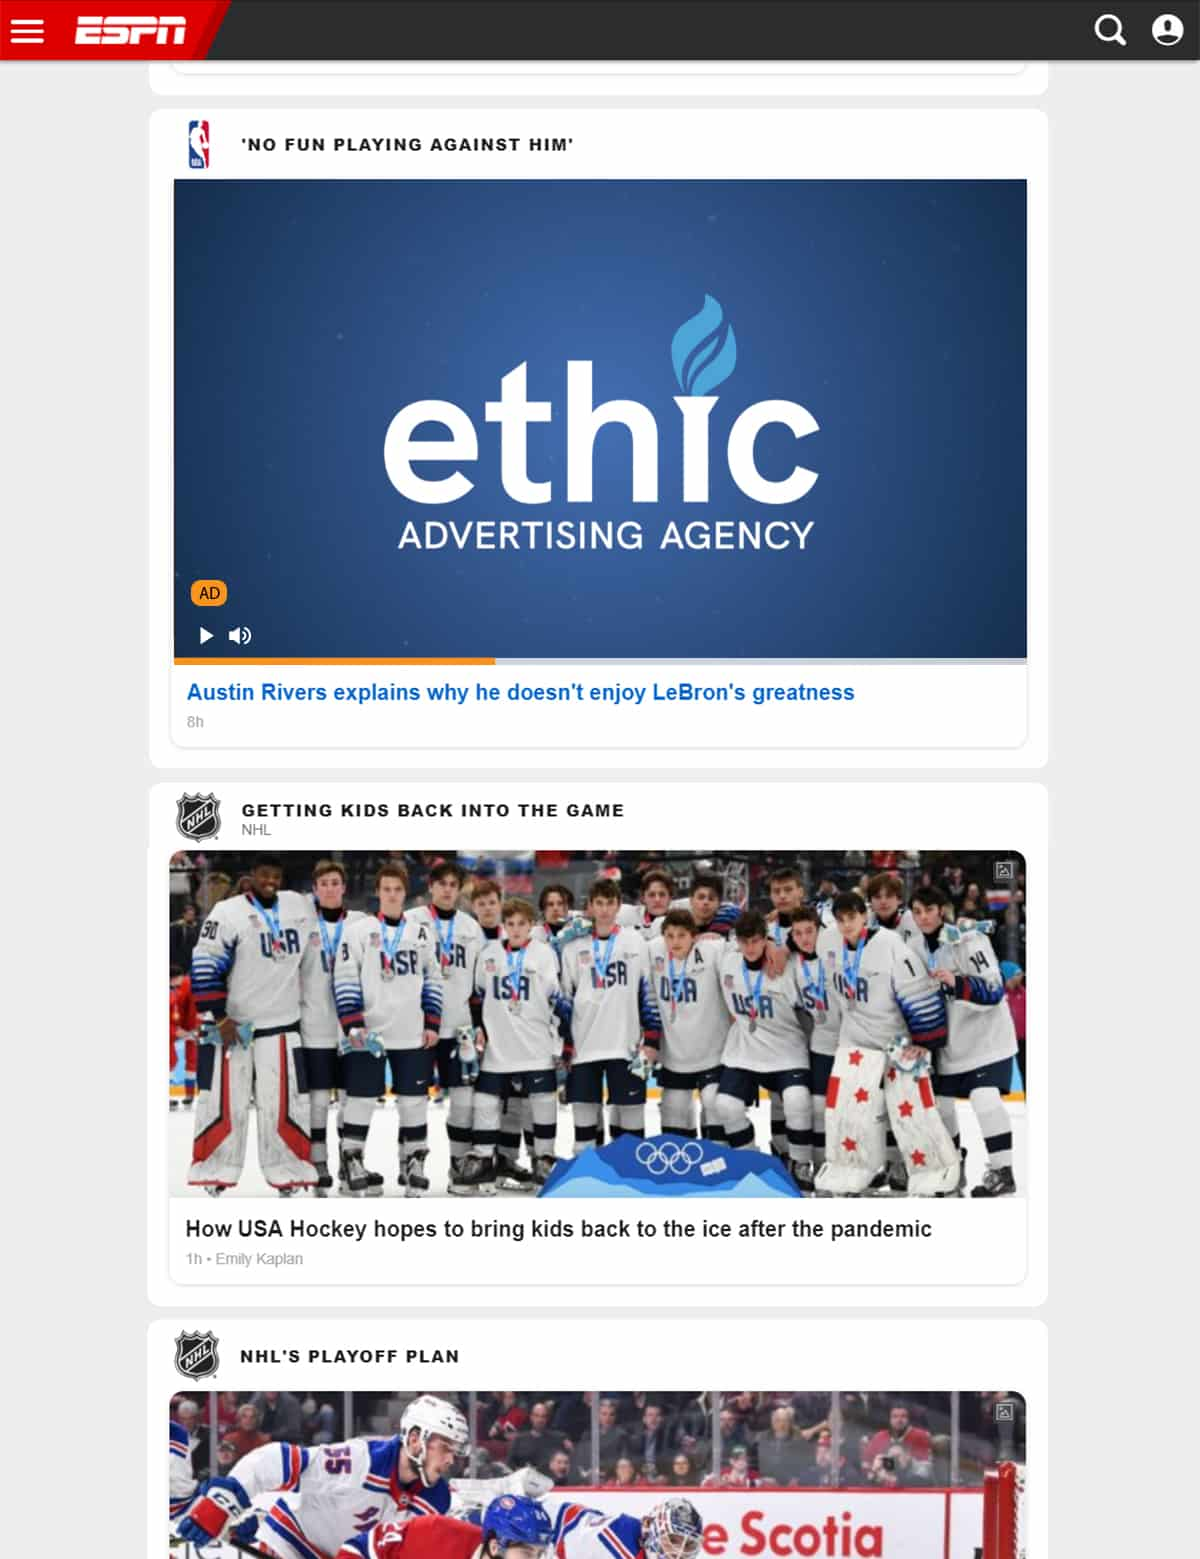 iPad video Pre-Roll mockup for ethic advertising agency